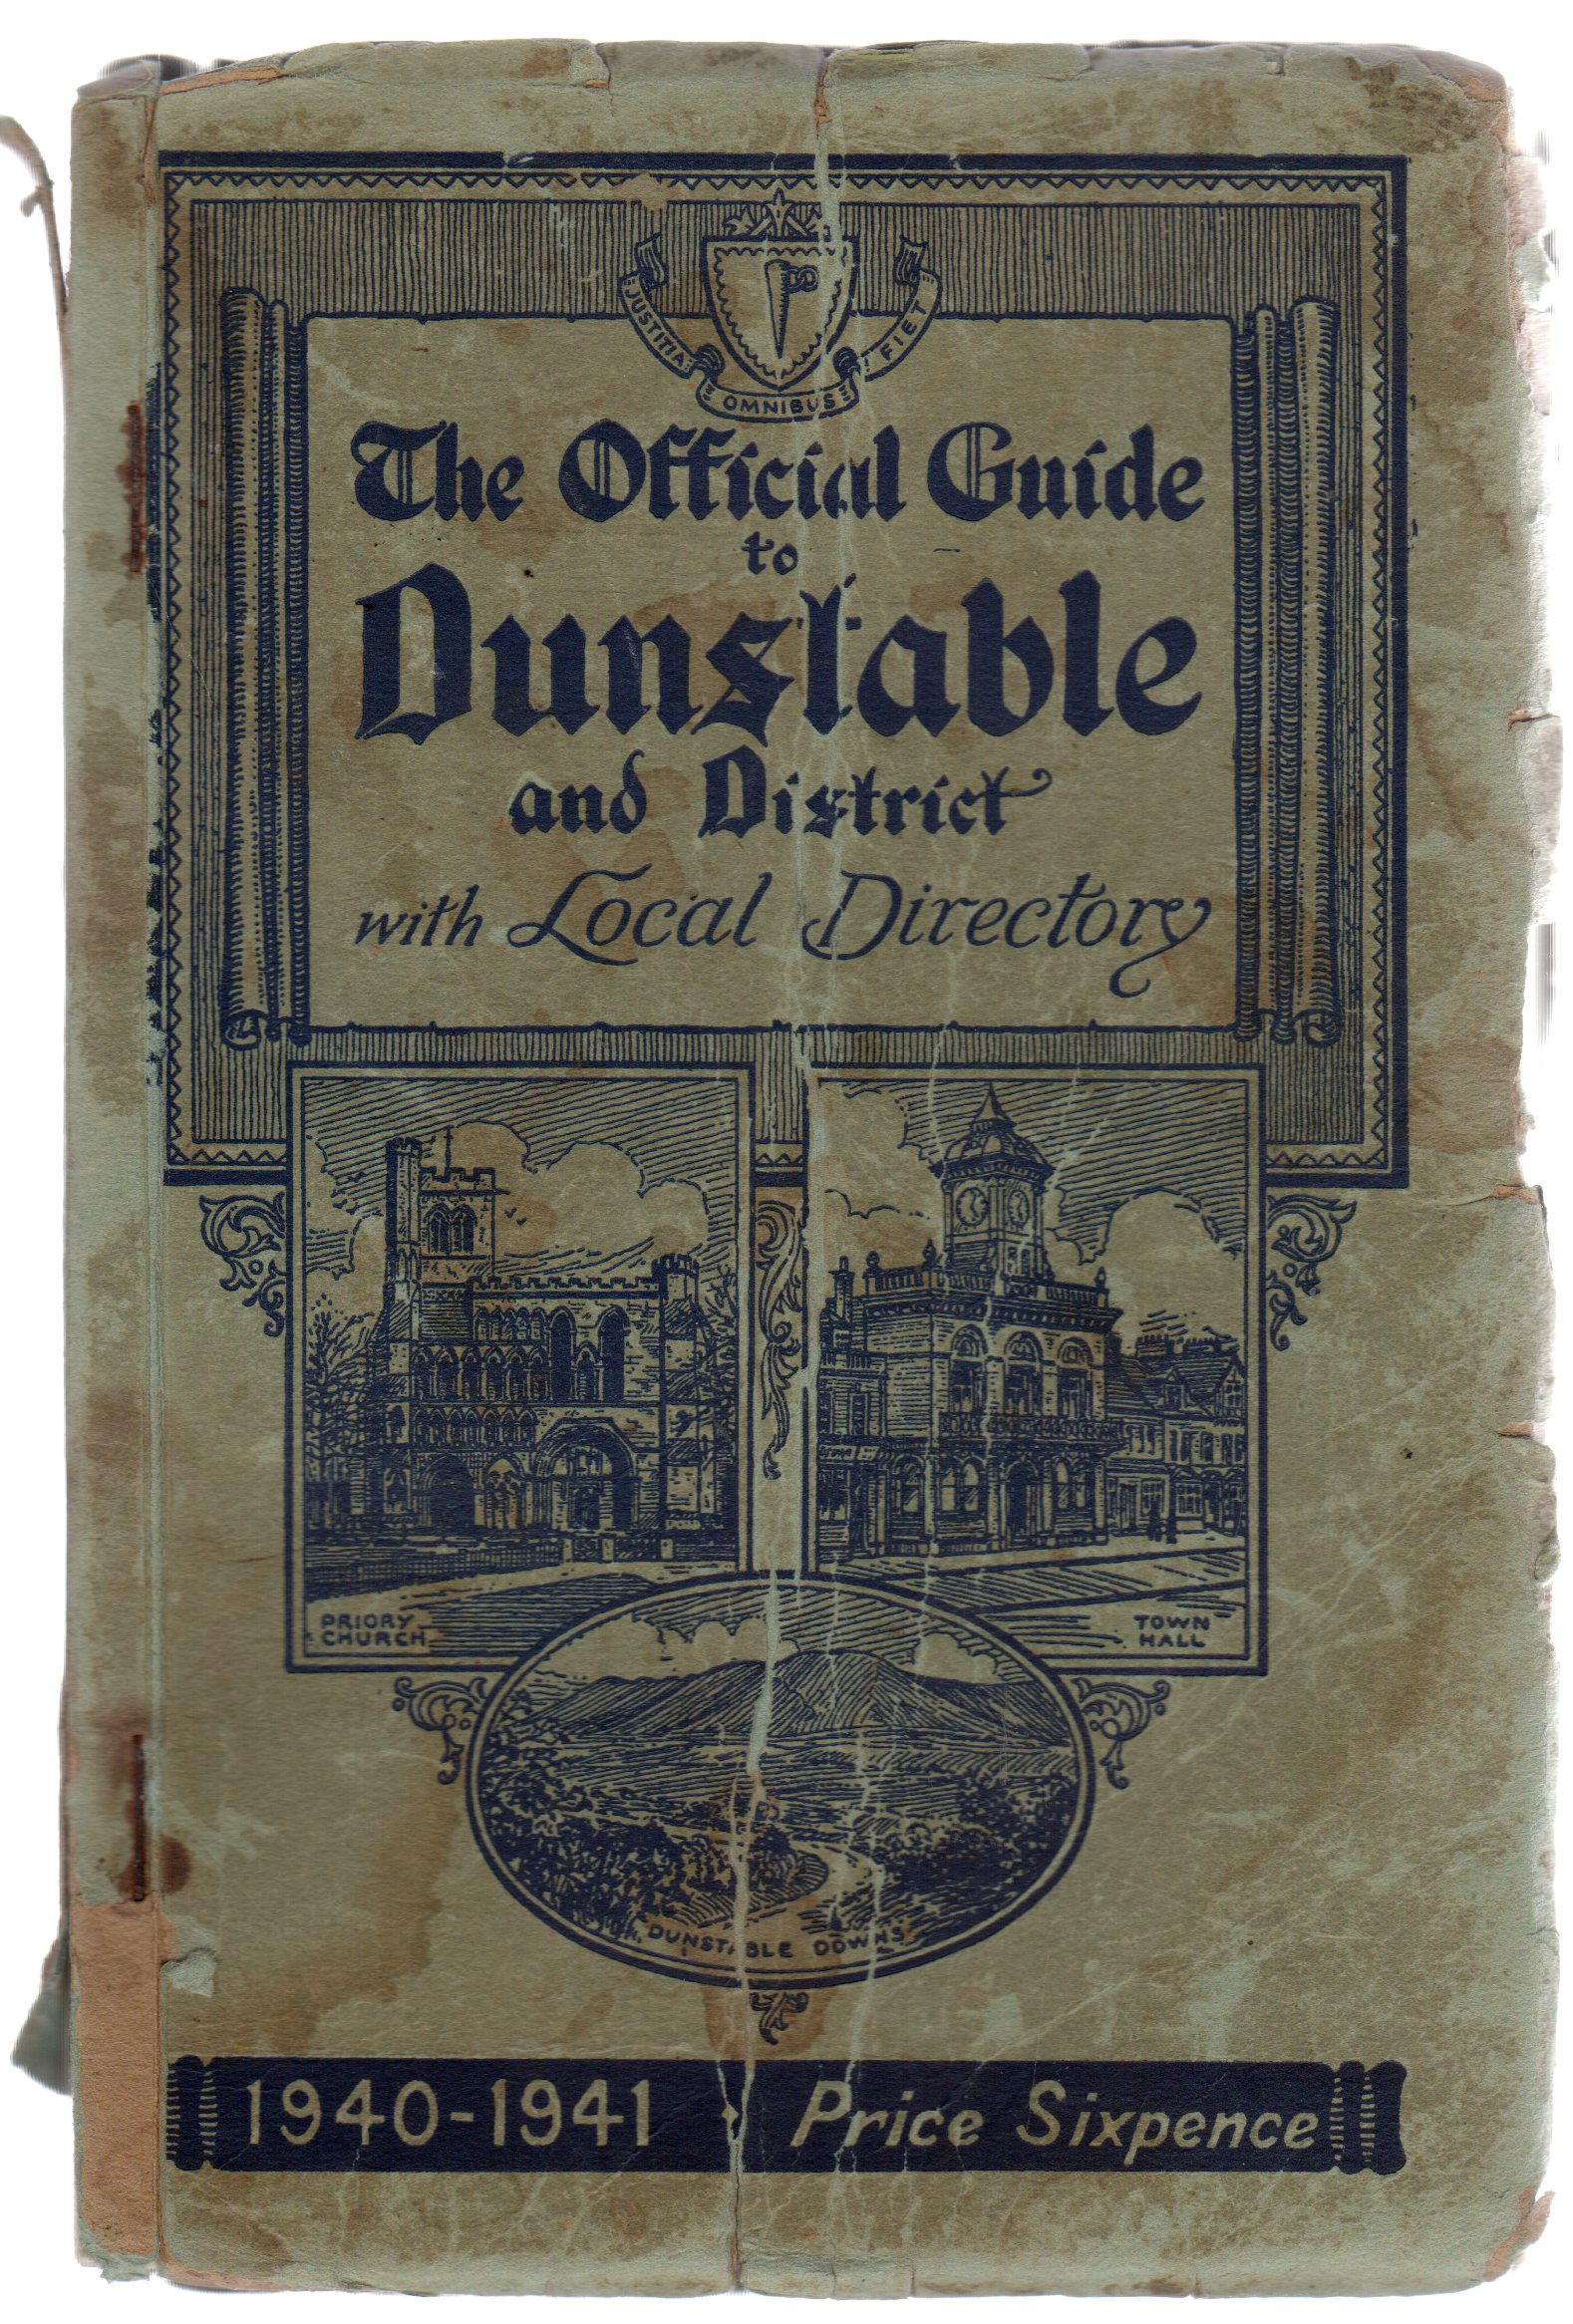 Image for The Official Guide to Dunstable and District with Local Directory  : 1940-1941